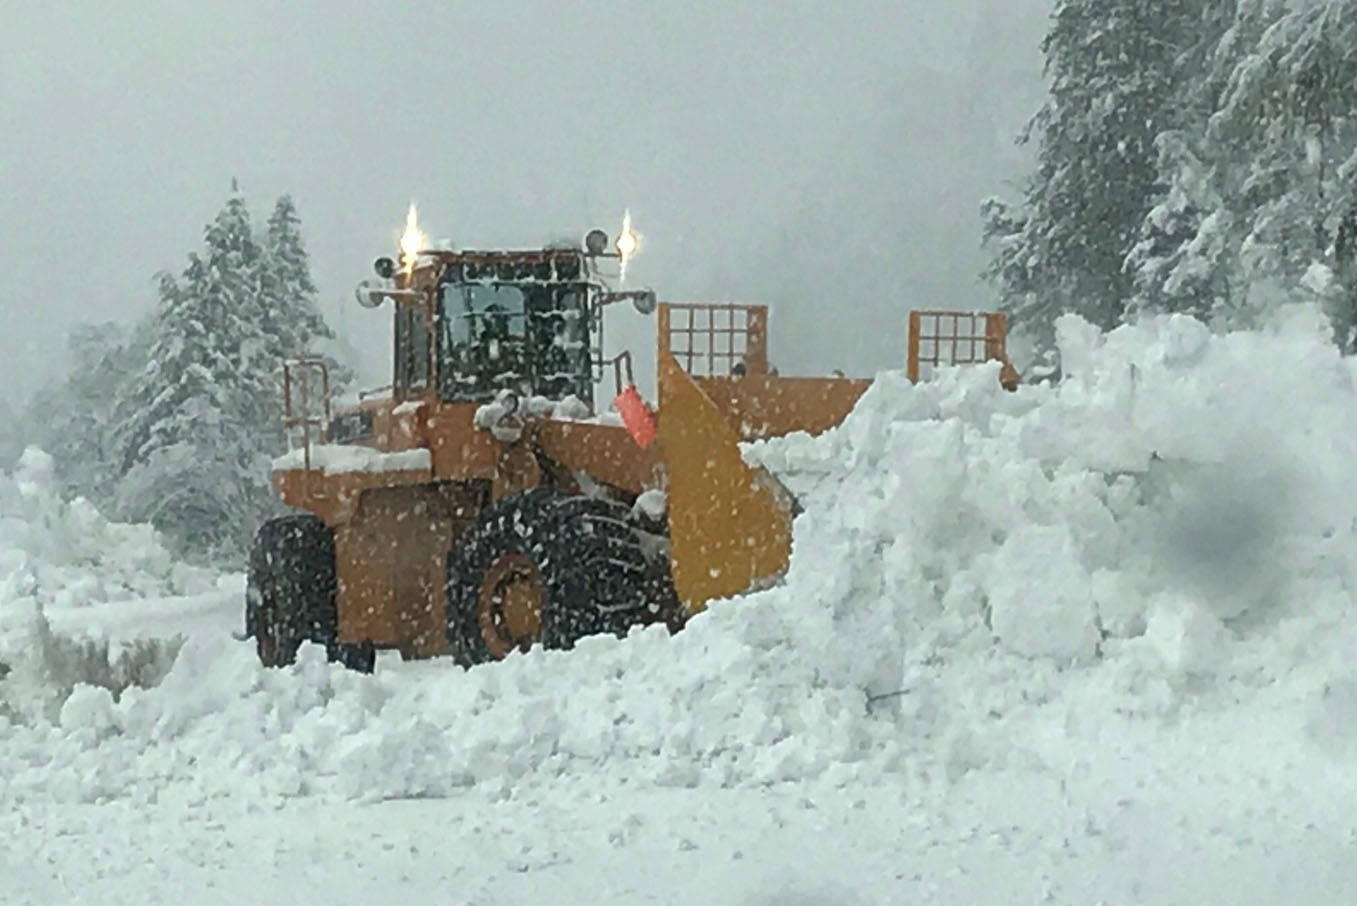 Crews clear the highway after avalanche control at Three Valley Gap on Feb. 2. Avalanche control is planned for Hwy. 1 near the B.C./Alta. border this morning. (Twitter/EmconD)